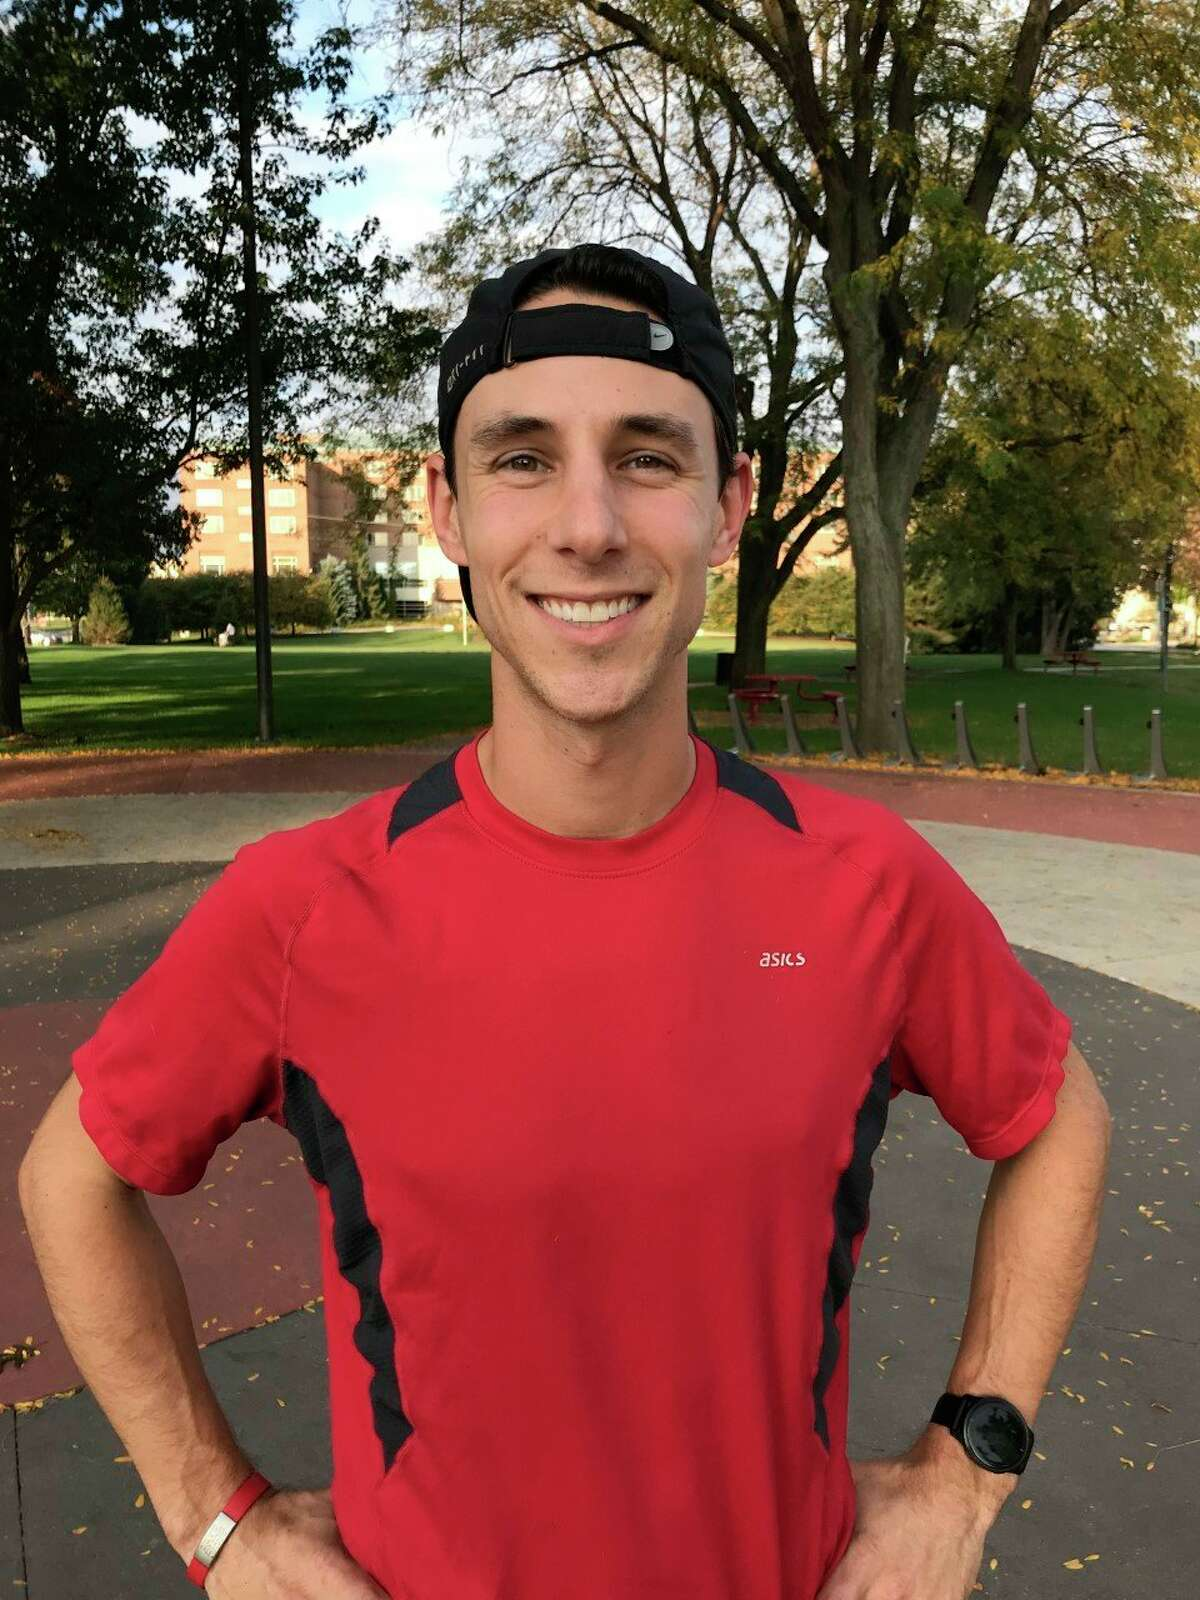 Nate Bussiere (photo provided)